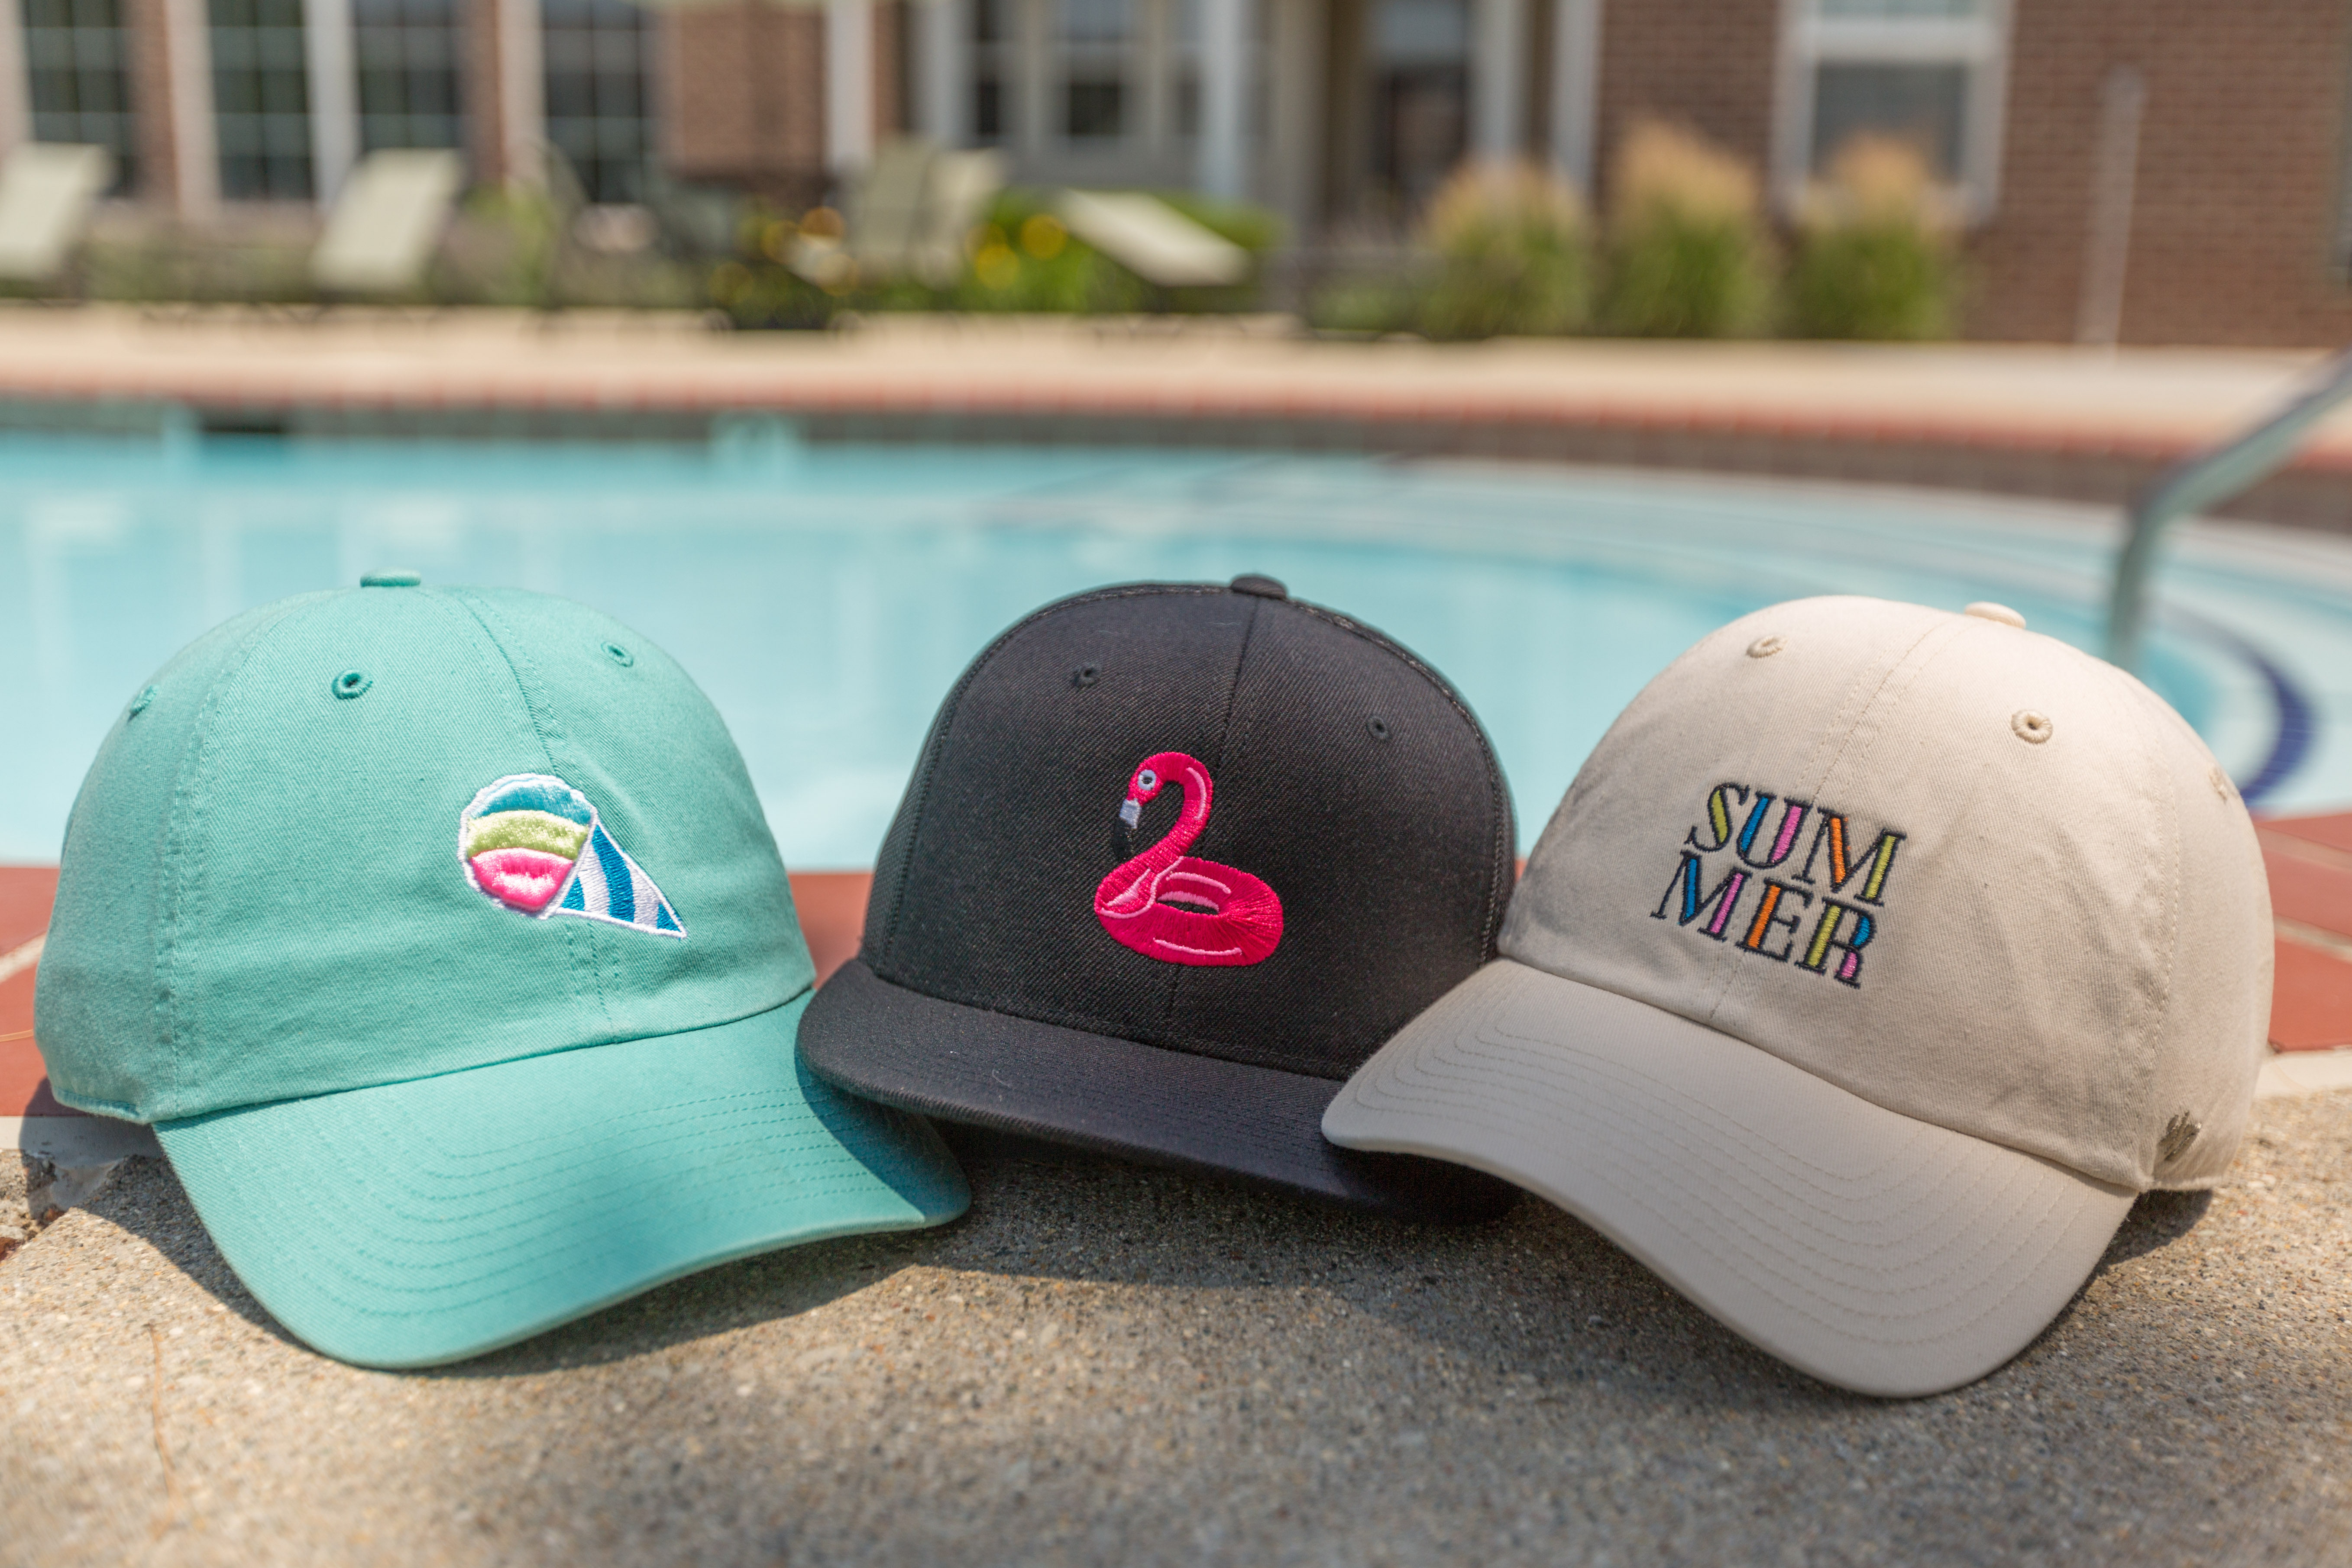 Personalize your summer with a custom hat from Lids Custom Zone. This  collection of unique art features newly added designs that will work  perfectly for a ... 2341af71743b